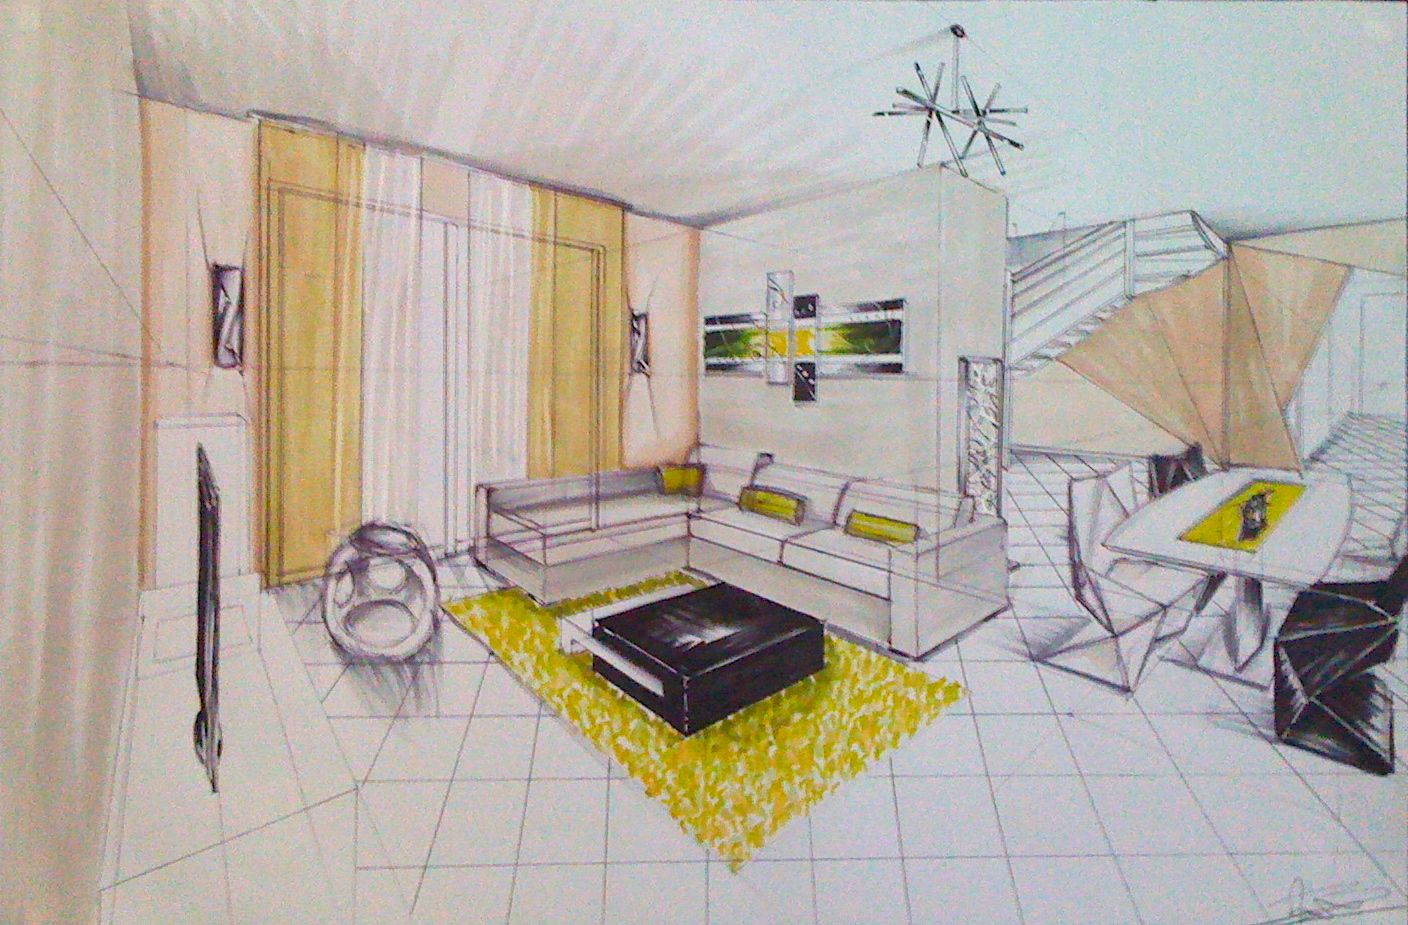 Dessins d 39 interieur de maisons en perspective anabelle for Photos d interieur de maison